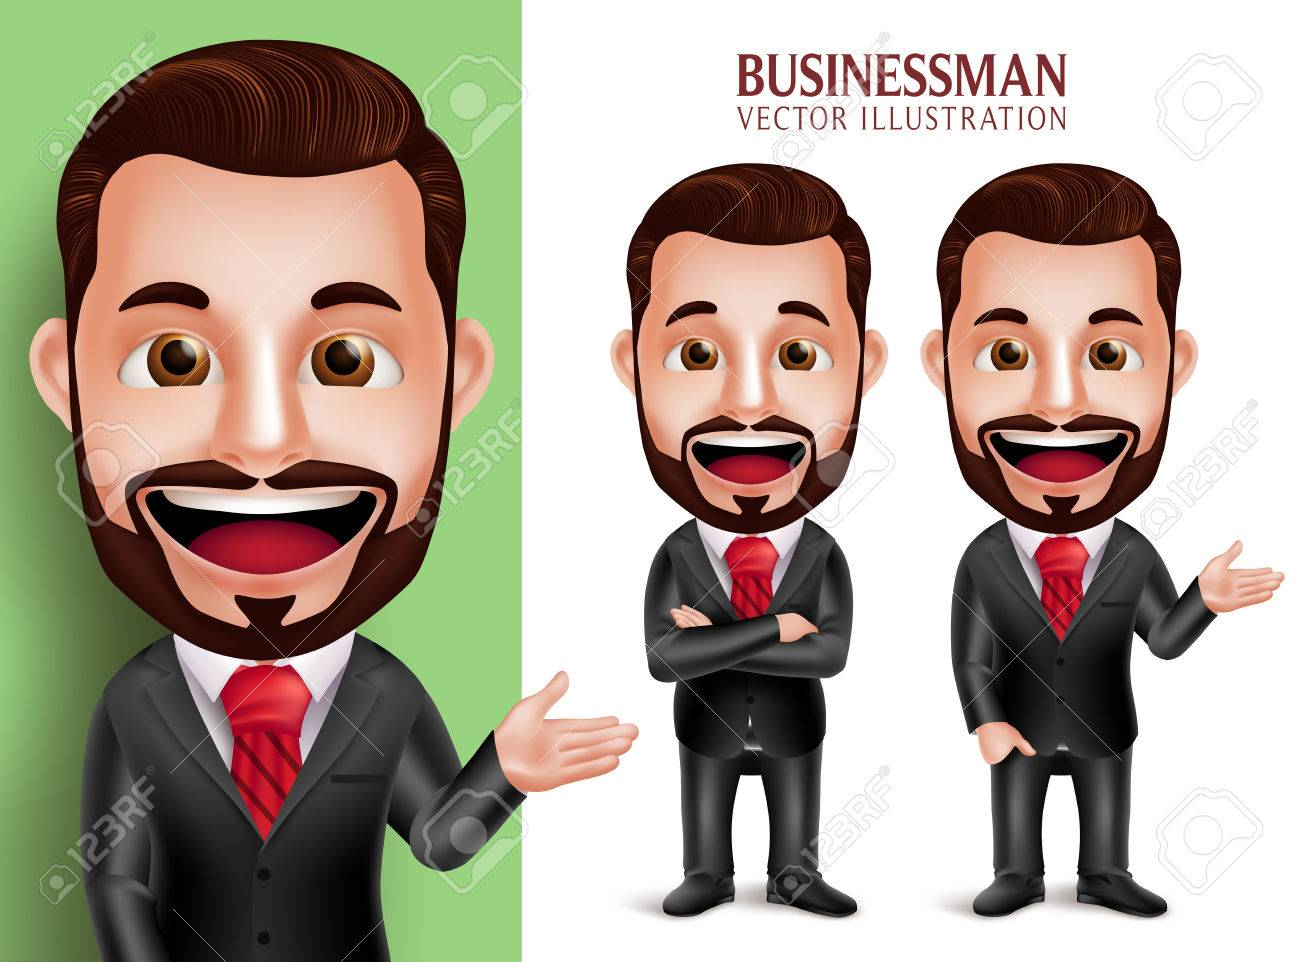 3D Realistic Professional Business Man Vector Character Smiling in Attractive Corporate Attire for Presentation Isolated in White Background. Set of Vector Illustration - 49826485